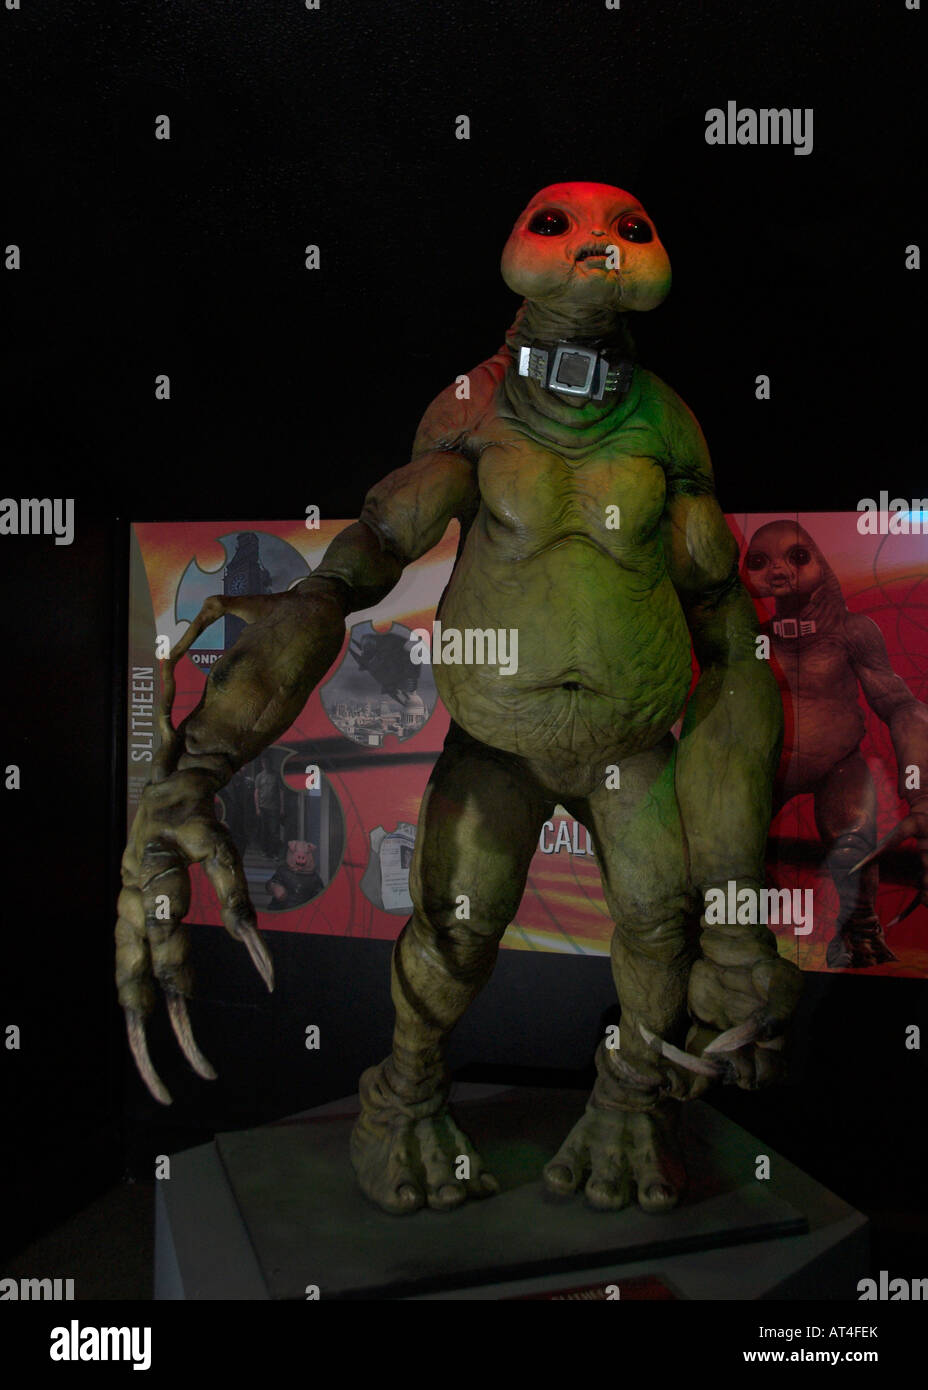 Slitheen Dr Doctor Who enemy - Stock Image